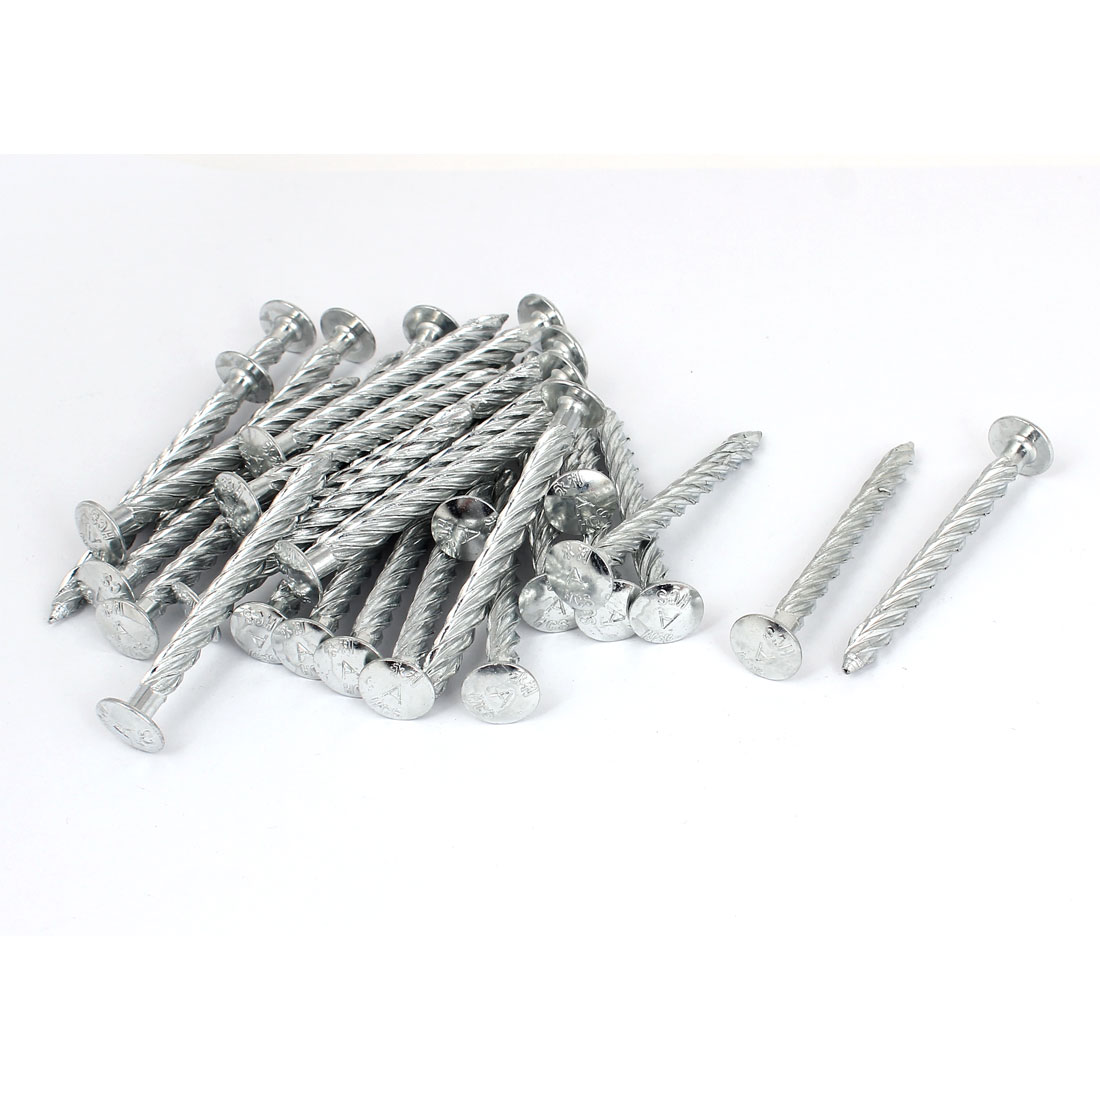 74mm Length x 7mm Dia Galvanised Square Twist Nails Spiral Screw 30pcs